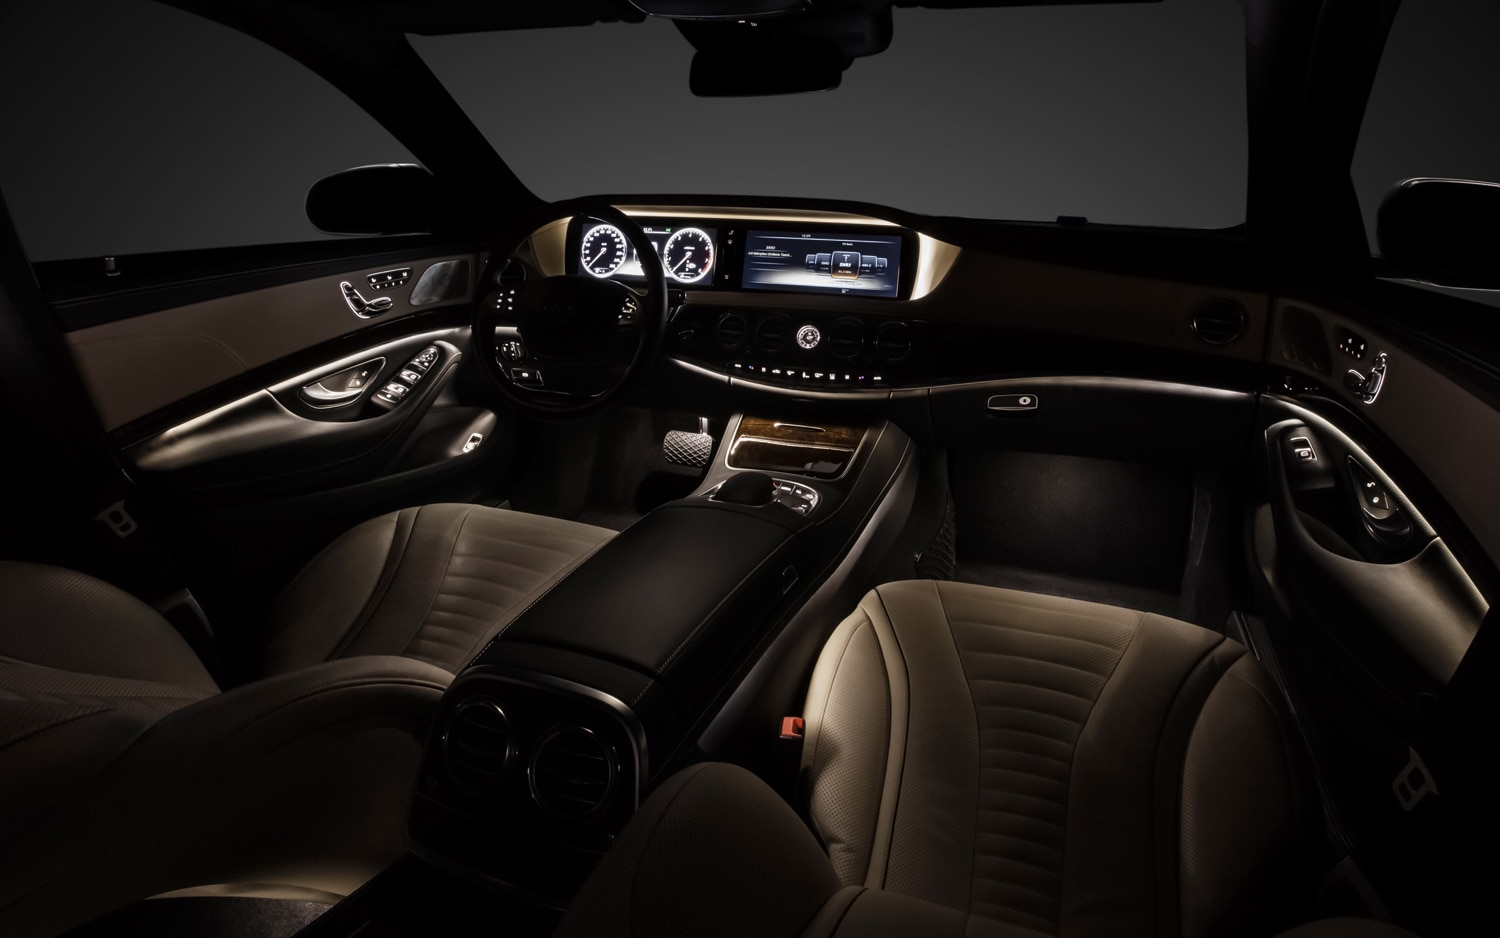 2014 Mercedes Benz S Class Interior Wide11